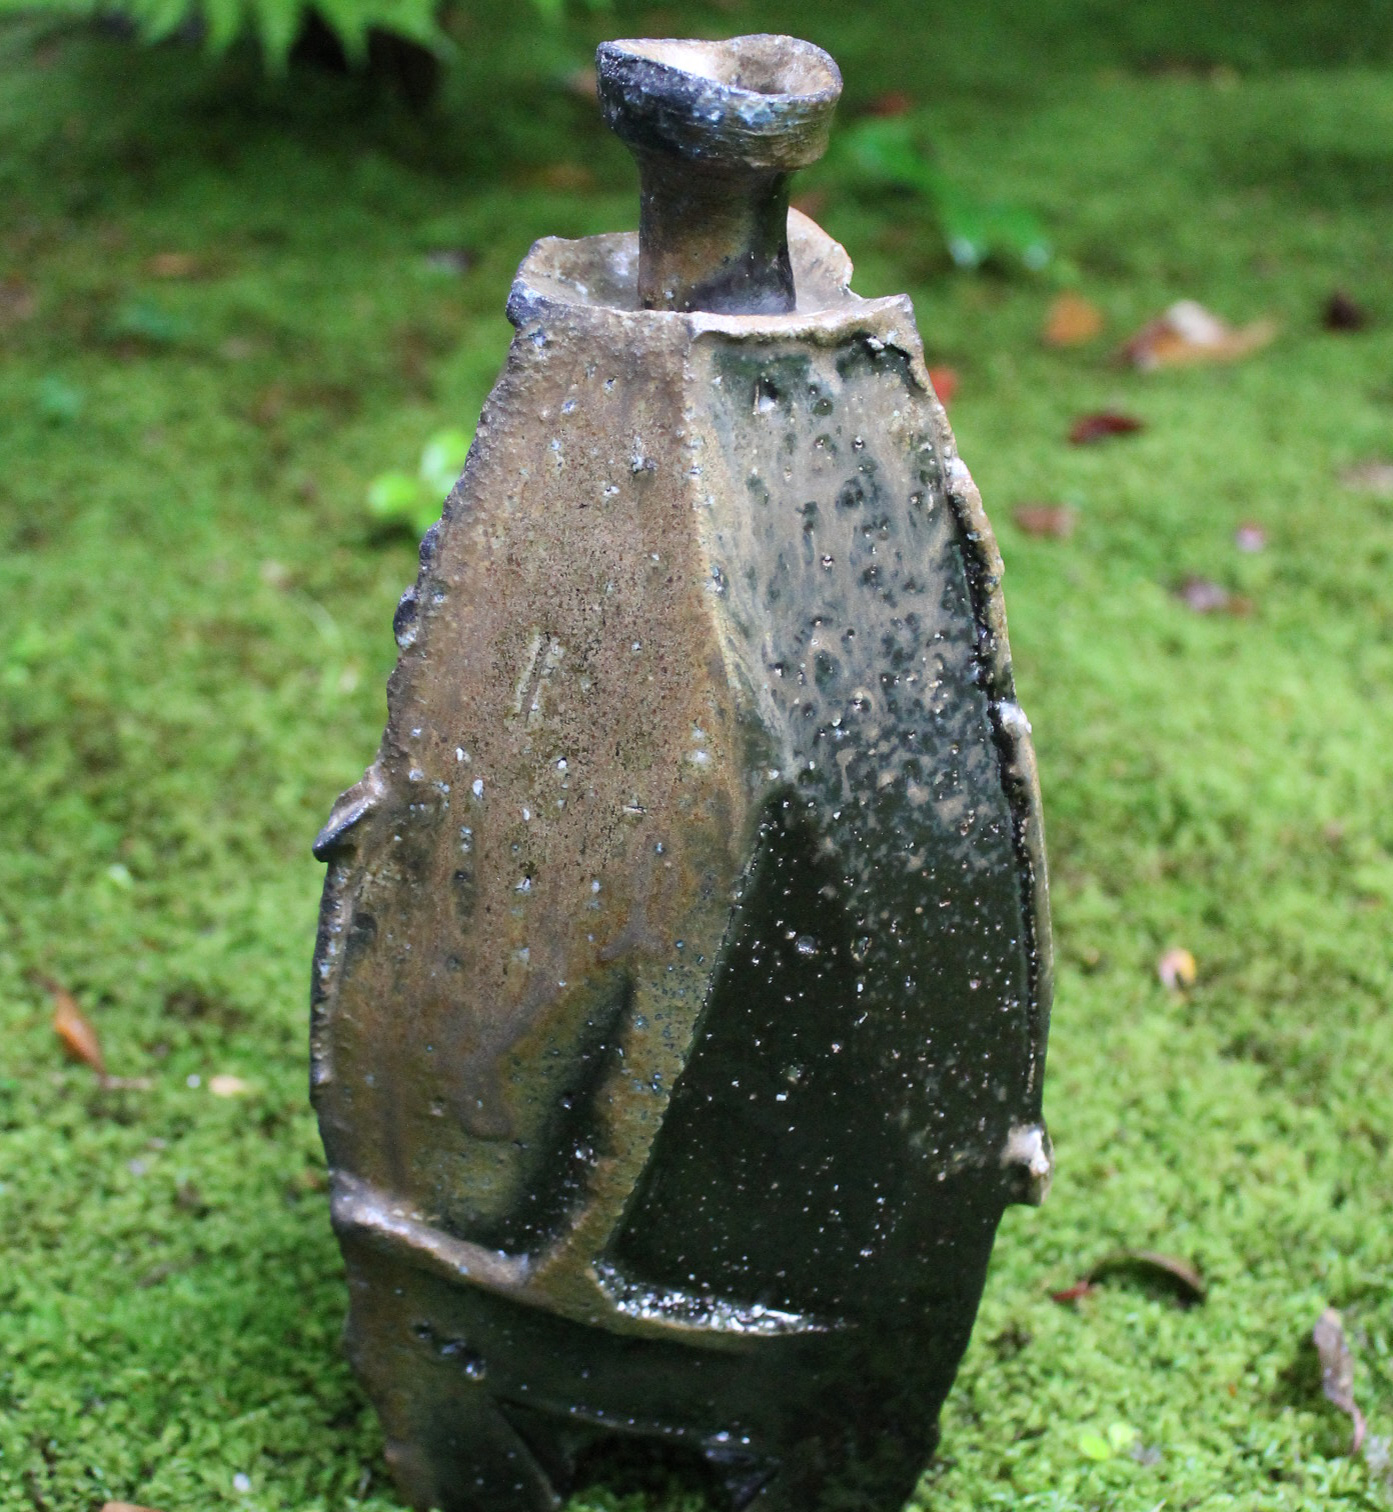 Tall Black-Bizen Vase-Vessel by Kakurezaki Ryuichi–Others